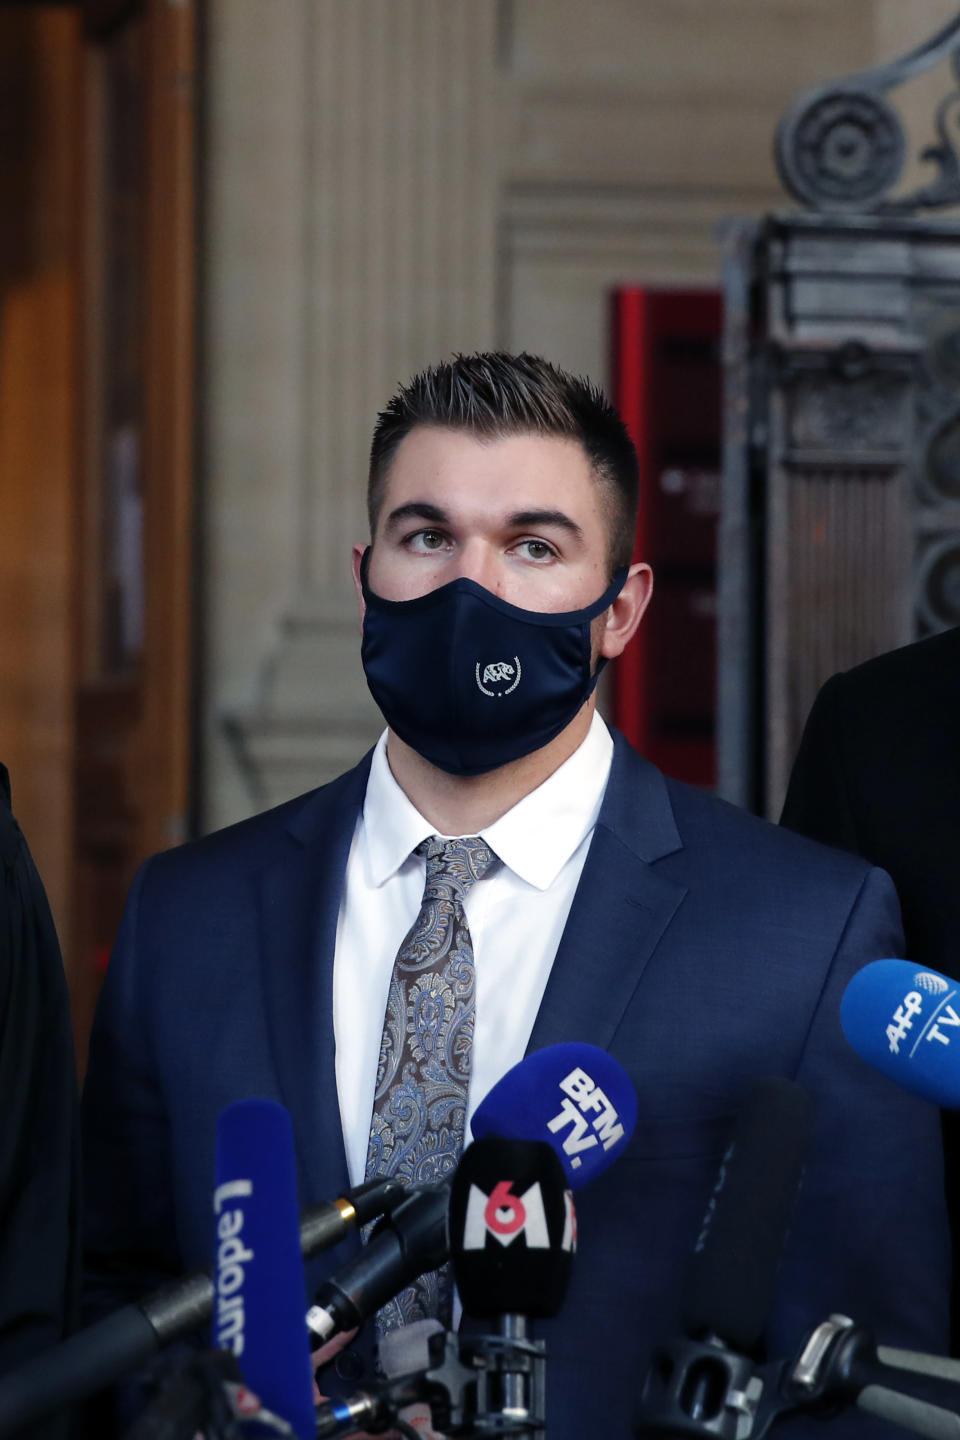 Alek Skarlatos delivers a speech at the end of his hearing during the Thalys attack trial at the Paris courthouse, Friday, Nov. 20, 2020. Passengers who wrestled and disarmed an Islamic State gunman aboard a high-speed Amsterdam to Paris train are recounting how their split-second decisions helped prevent what could have become a mass slaughter. (AP Photo/Francois Mori)